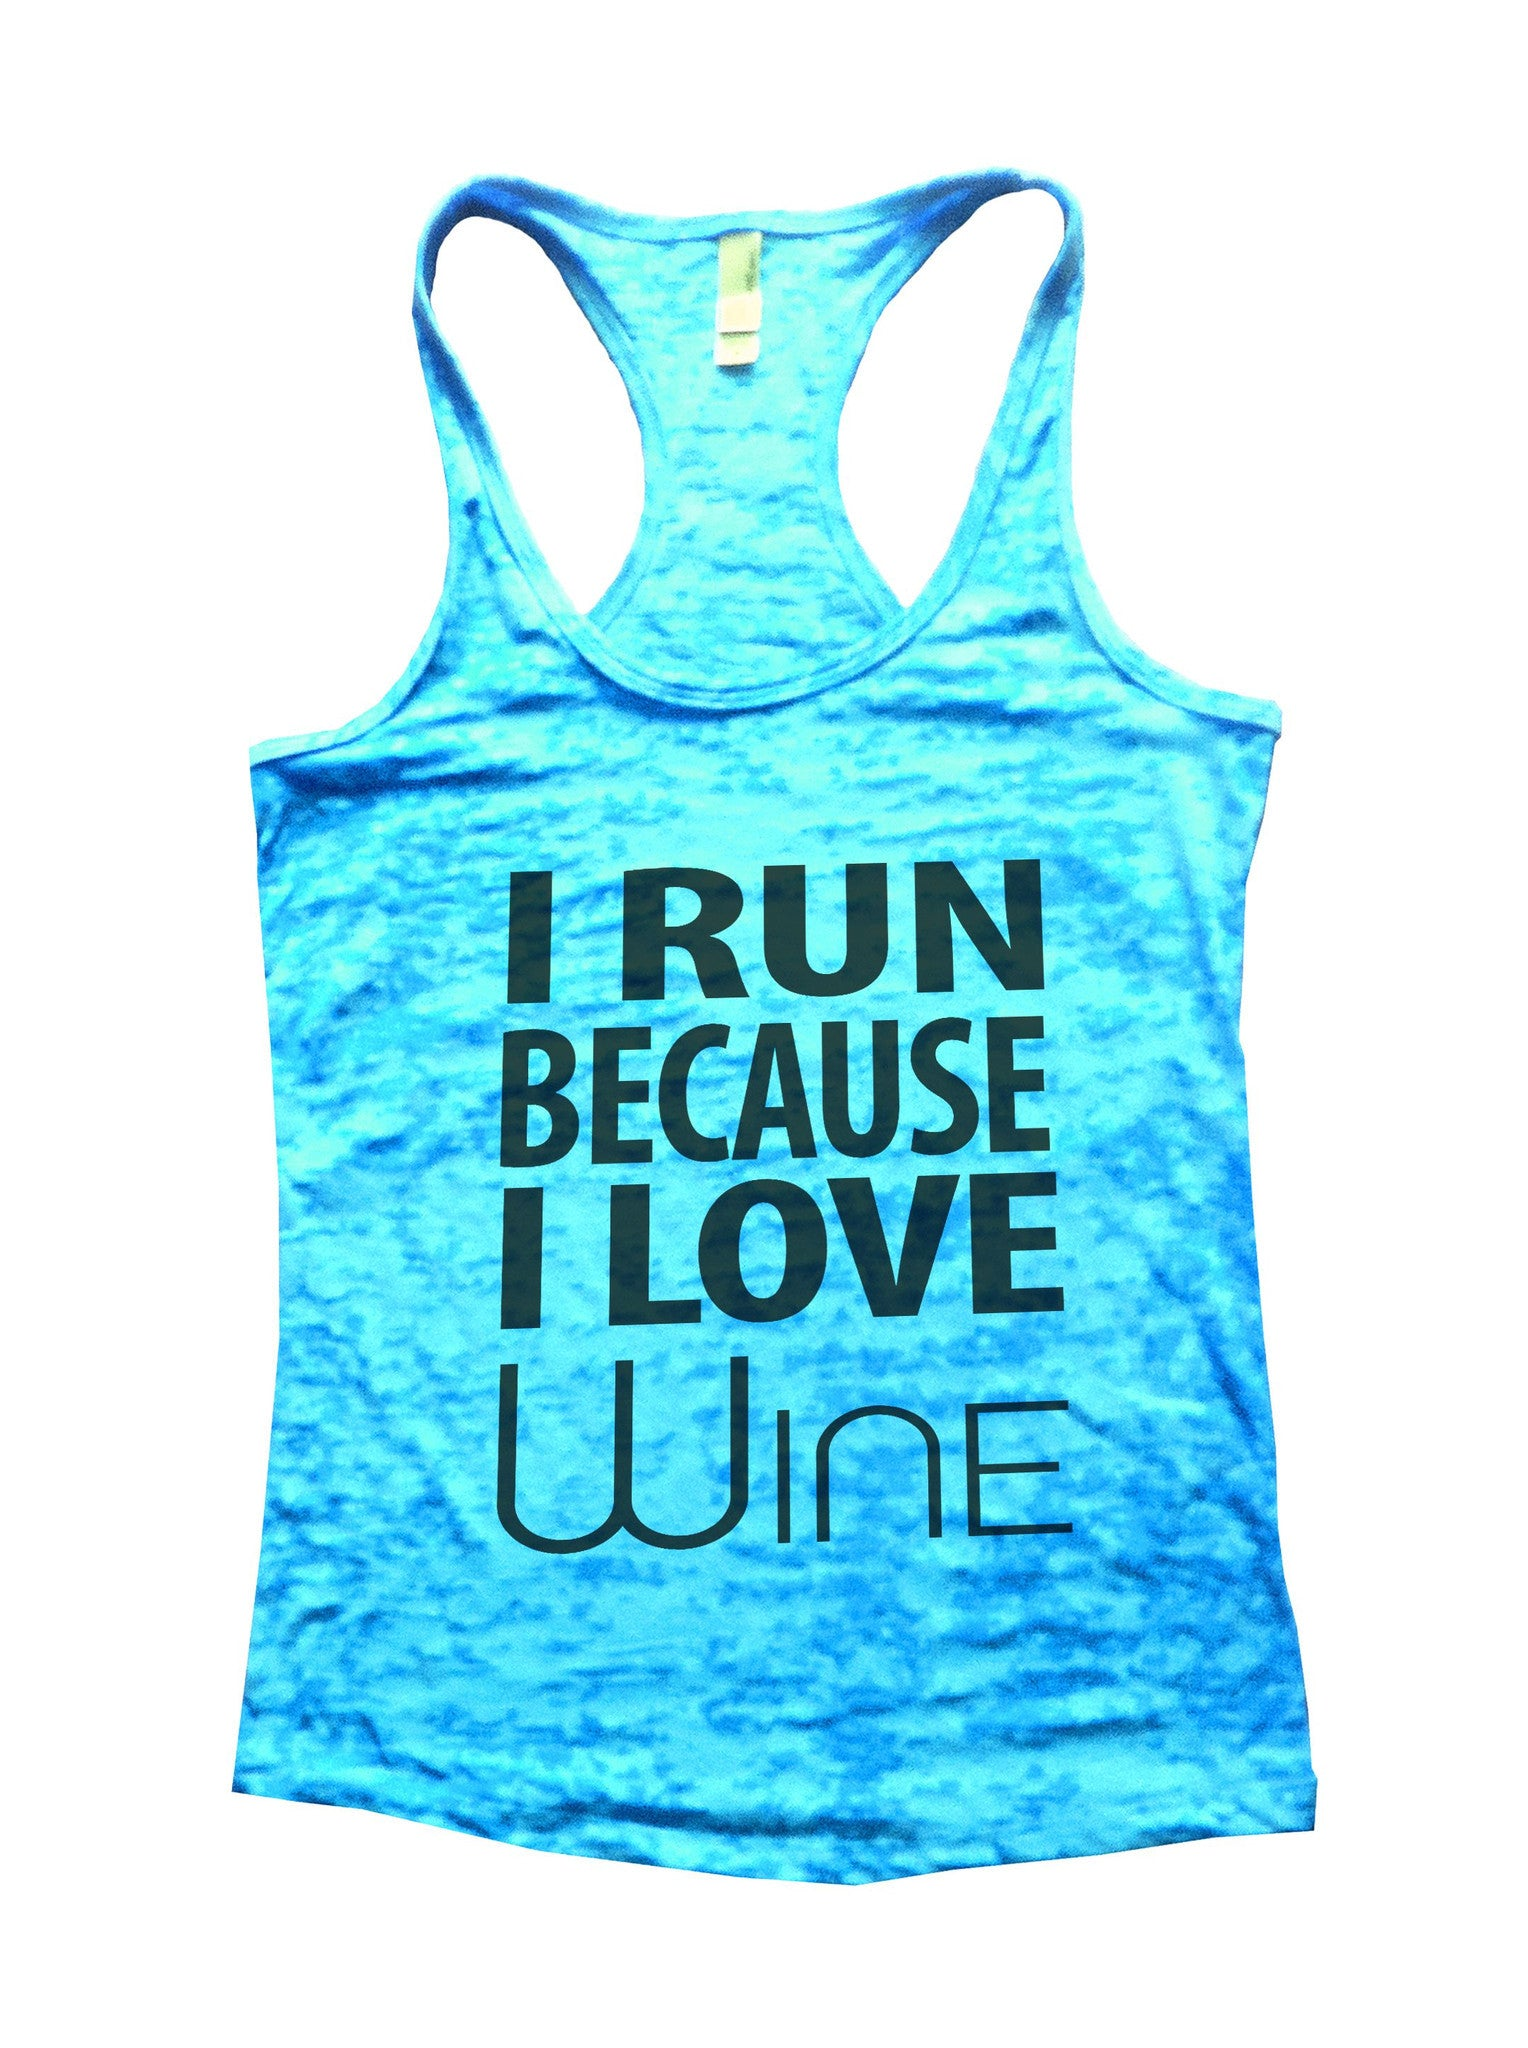 I Run Because I love Wine Burnout Tank Top By BurnoutTankTops.com - 603 - Funny Shirts Tank Tops Burnouts and Triblends  - 1